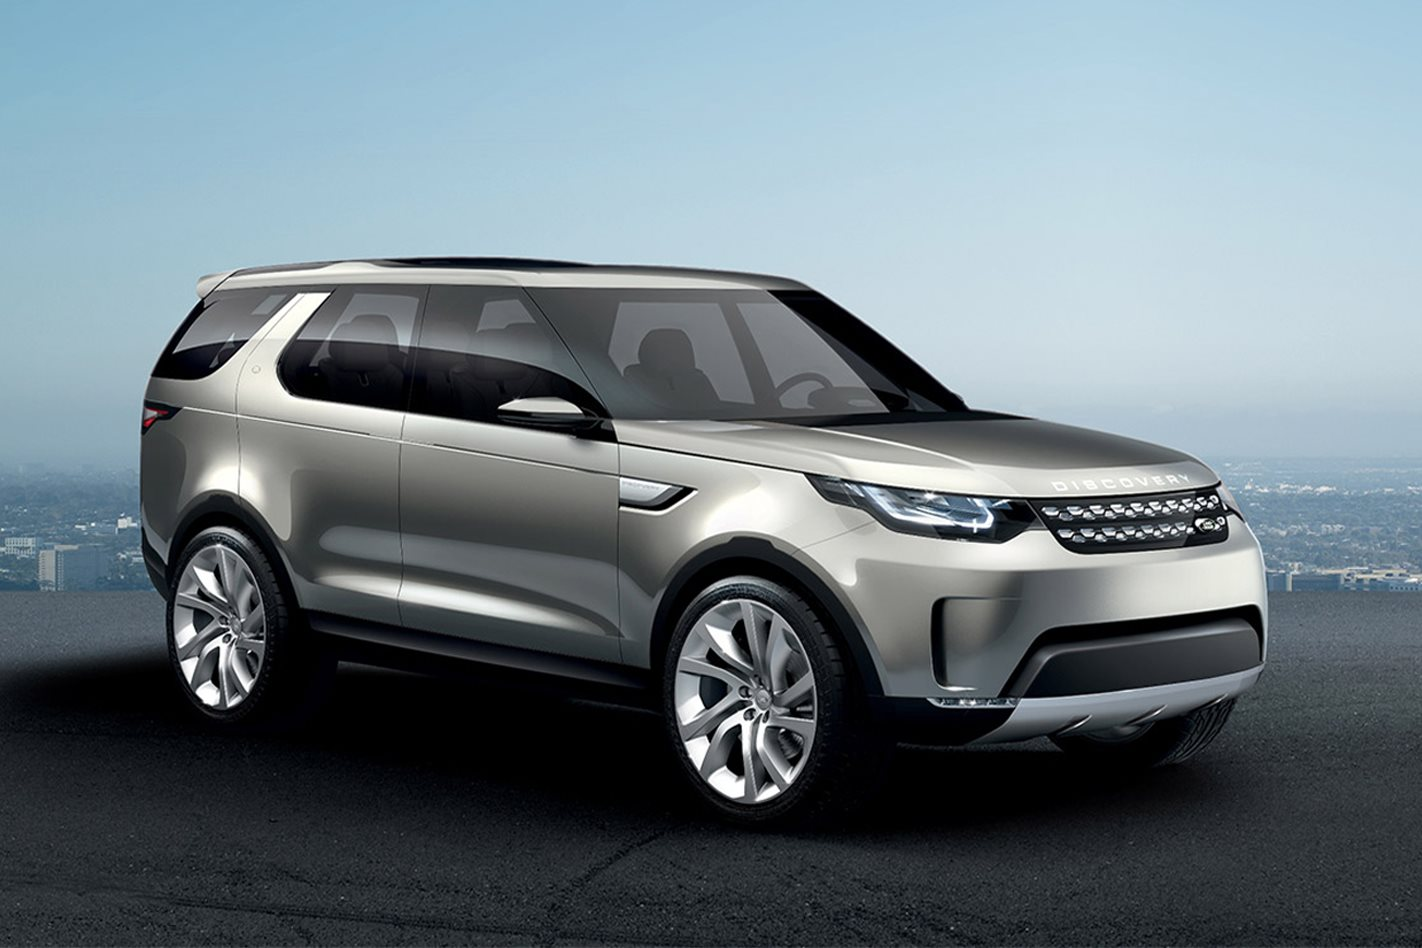 2014 Land Rover Discovery review